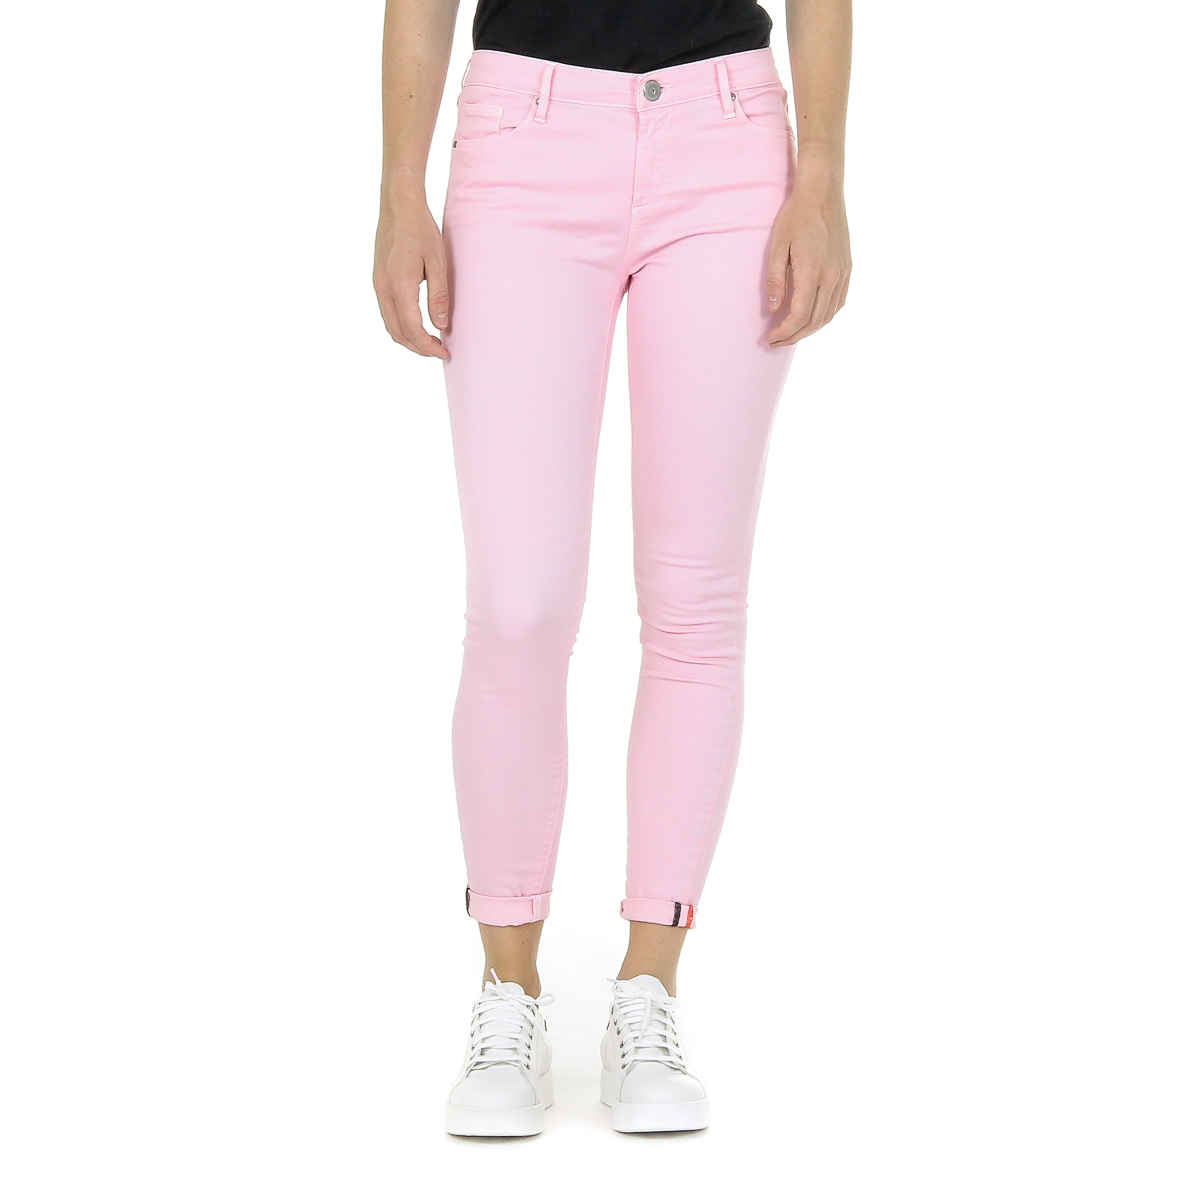 Primary image for Andrew Charles Womens Trousers Pink CLAIRE